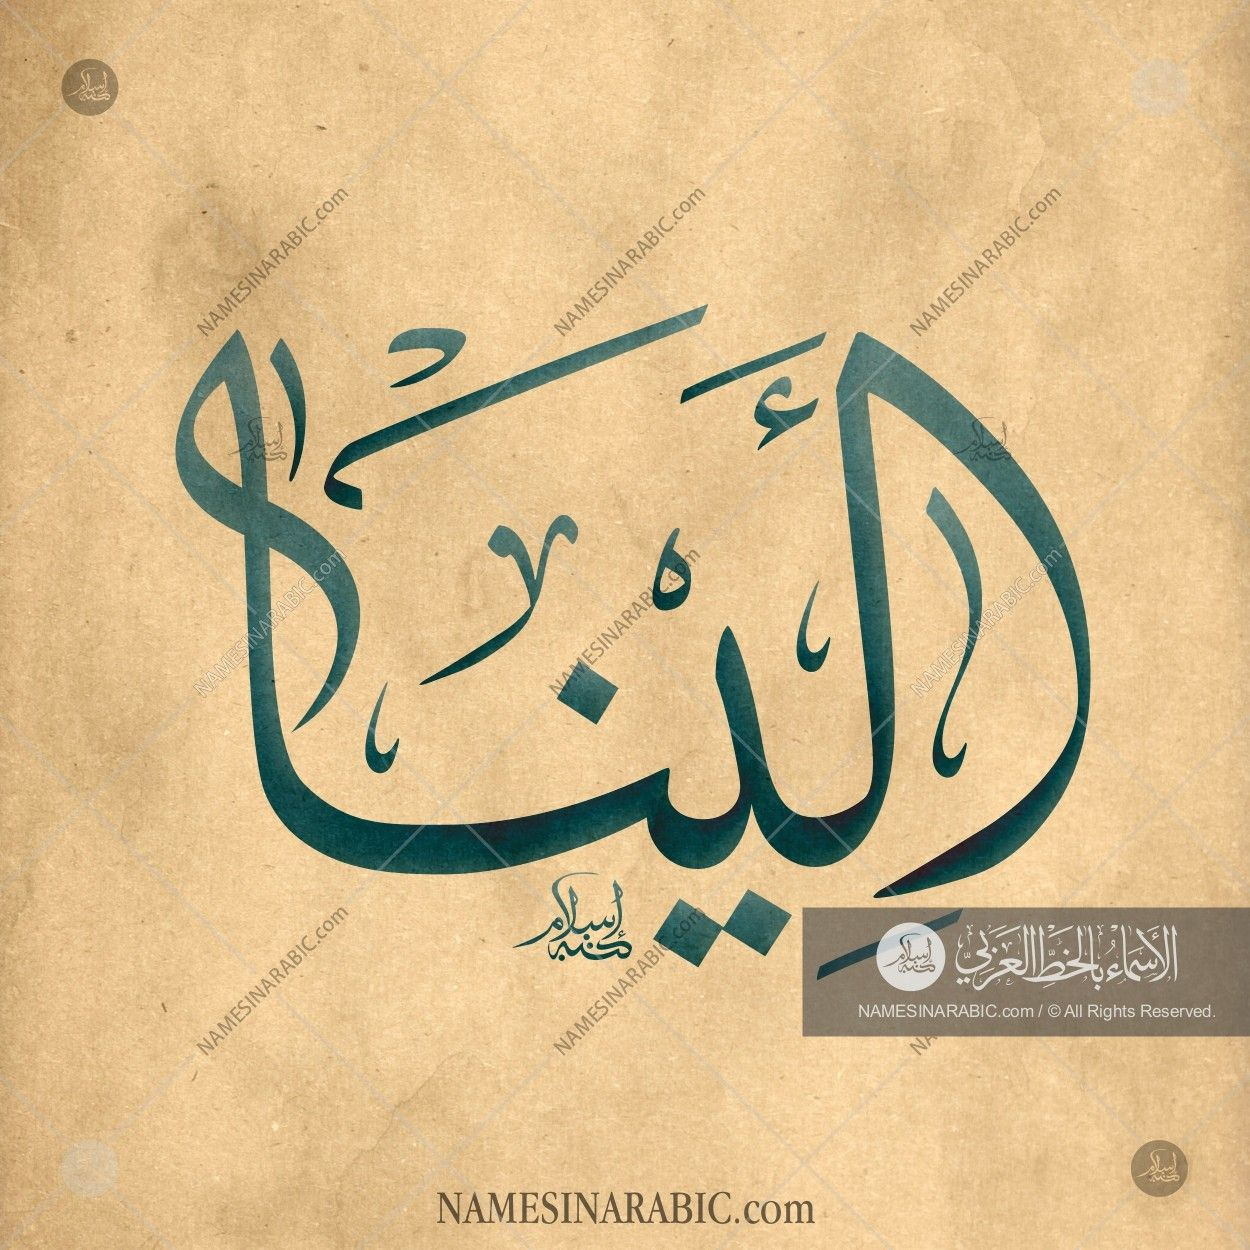 Alina الينا Names In Arabic Calligraphy Name 4875 Calligraphy Name Calligraphy Arabic Calligraphy